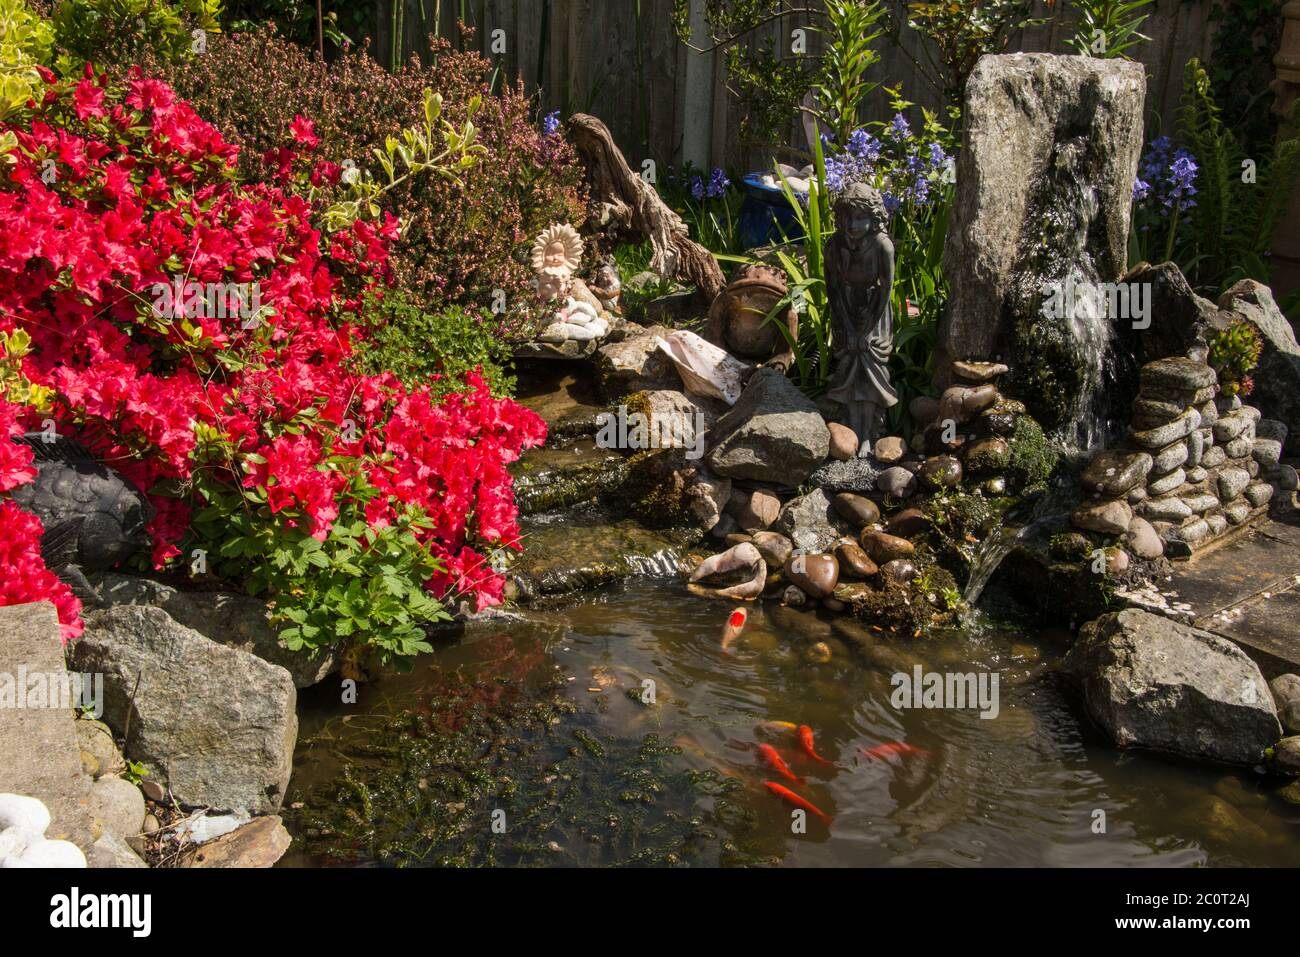 Pond Layout High Resolution Stock Photography And Images Alamy